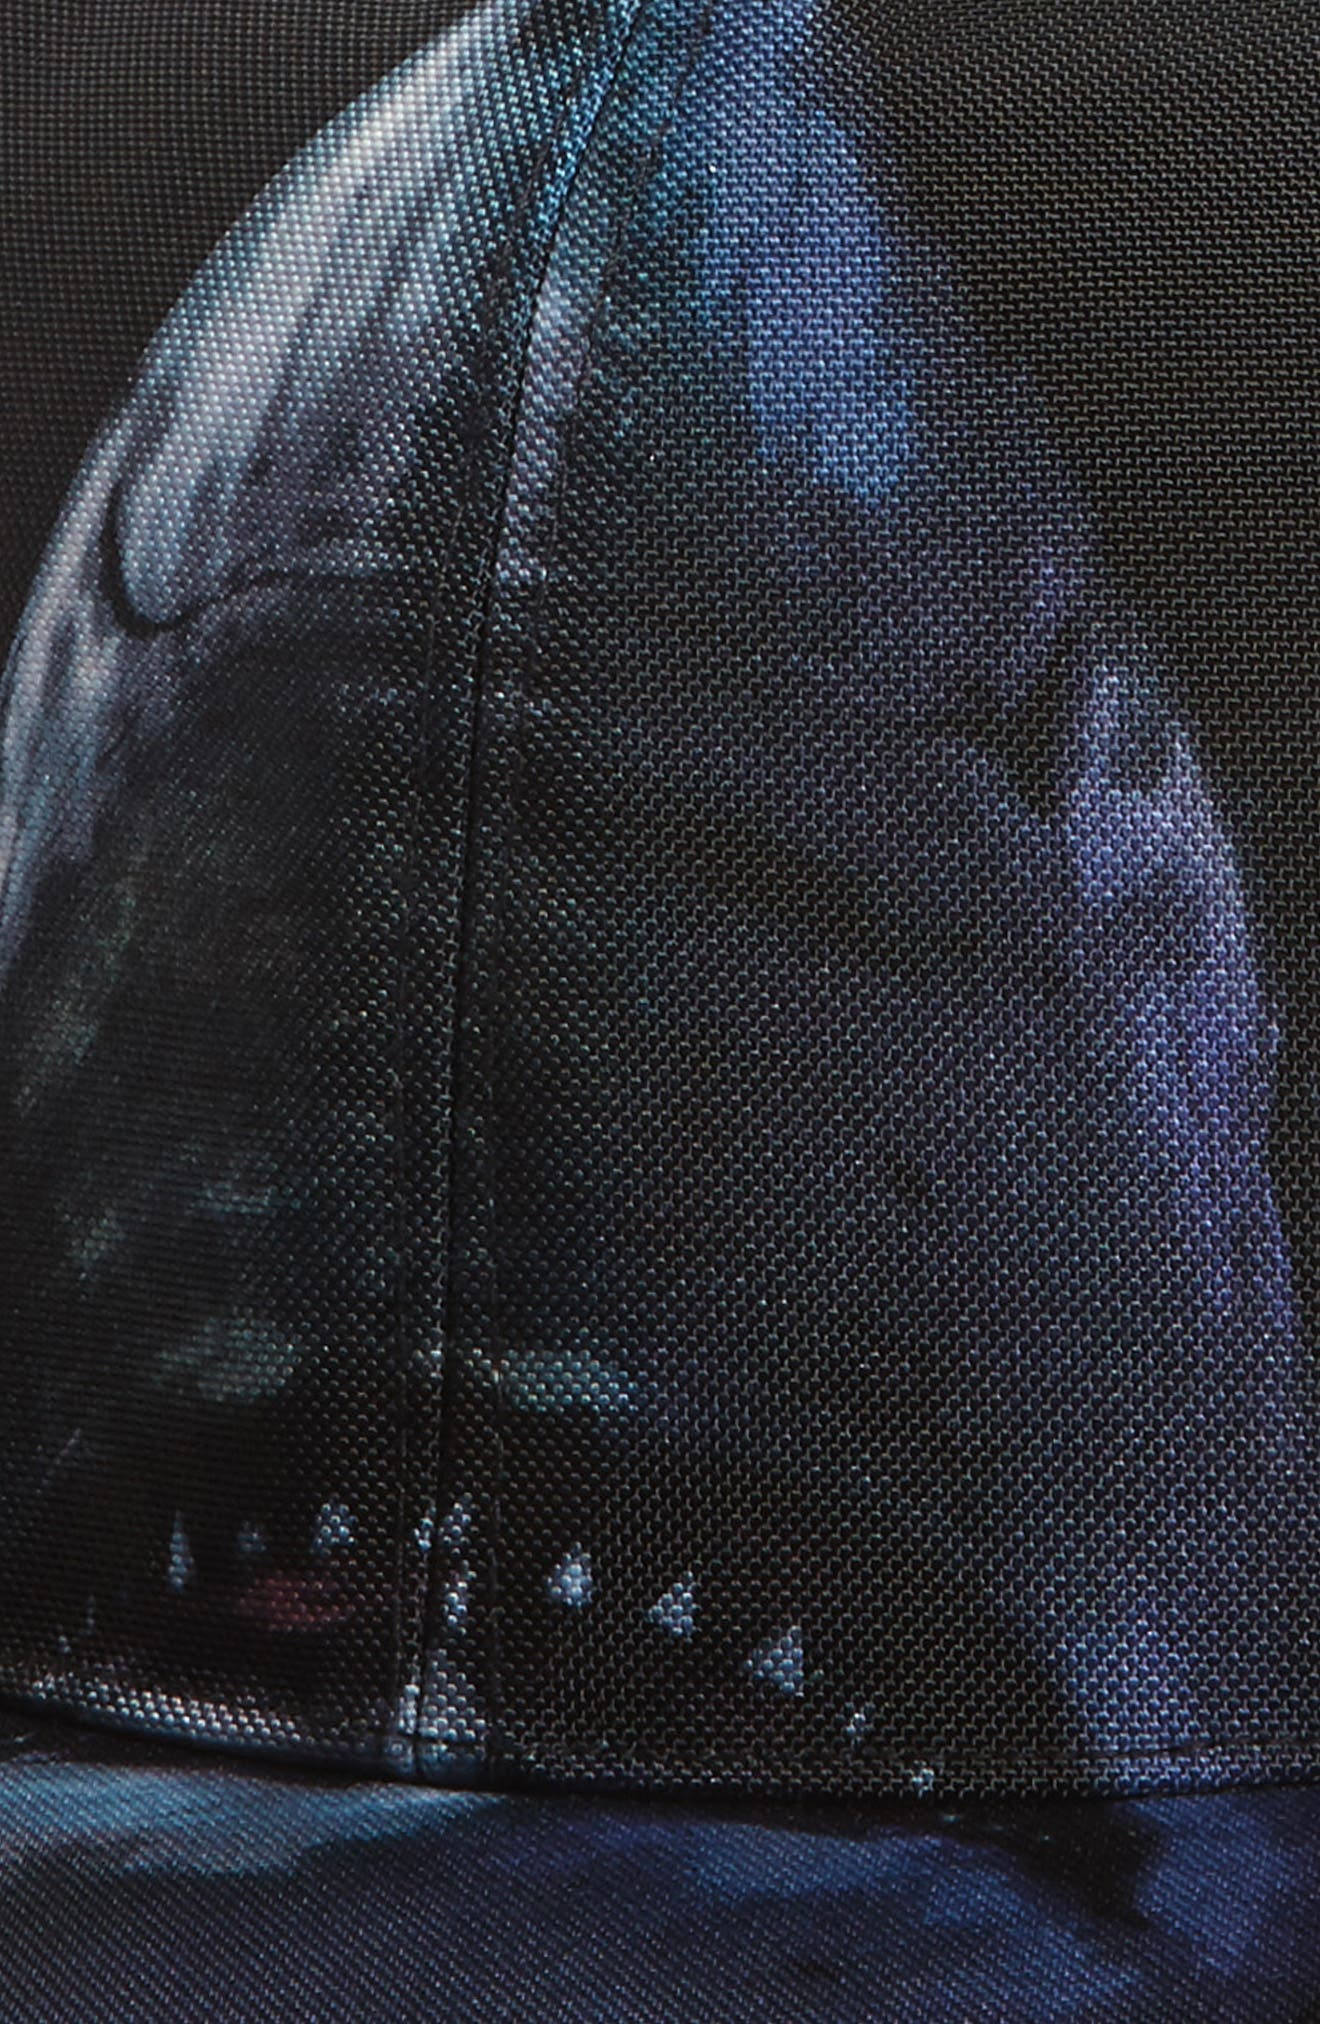 Shark Print Cap,                             Alternate thumbnail 3, color,                             MULTICOLORED